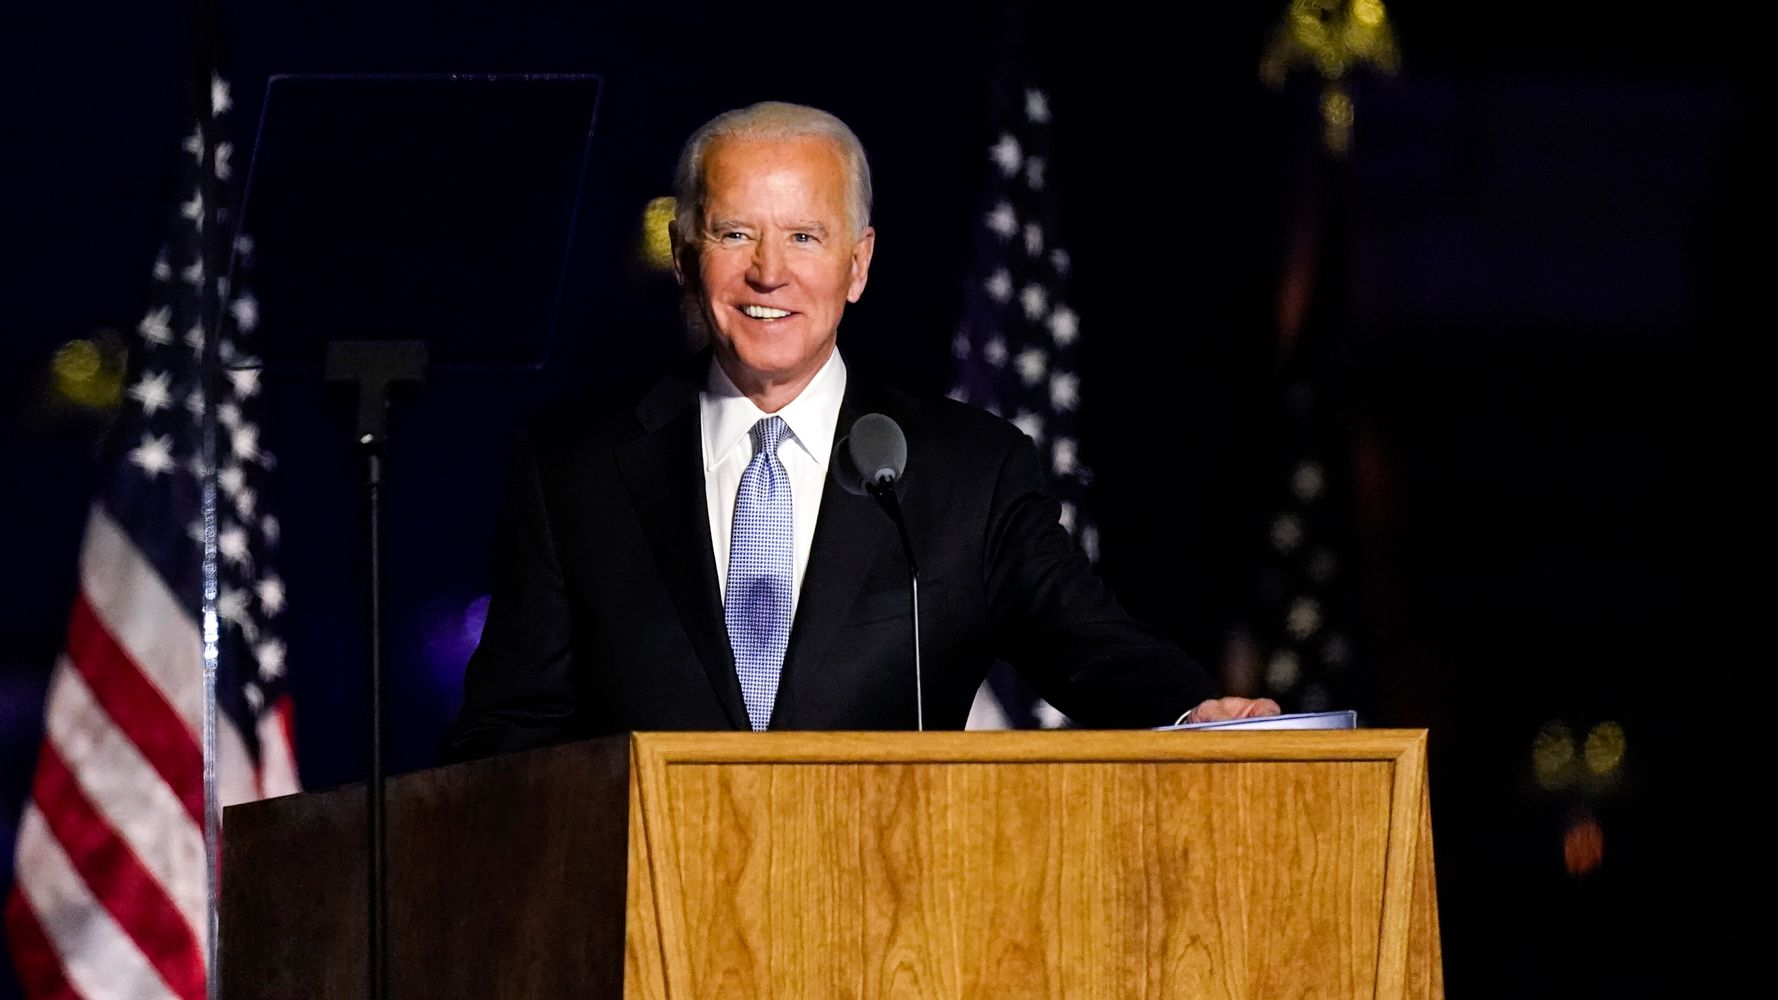 Joe Biden Just Gave A Totally Normal Political Speech — And It Felt So Radical